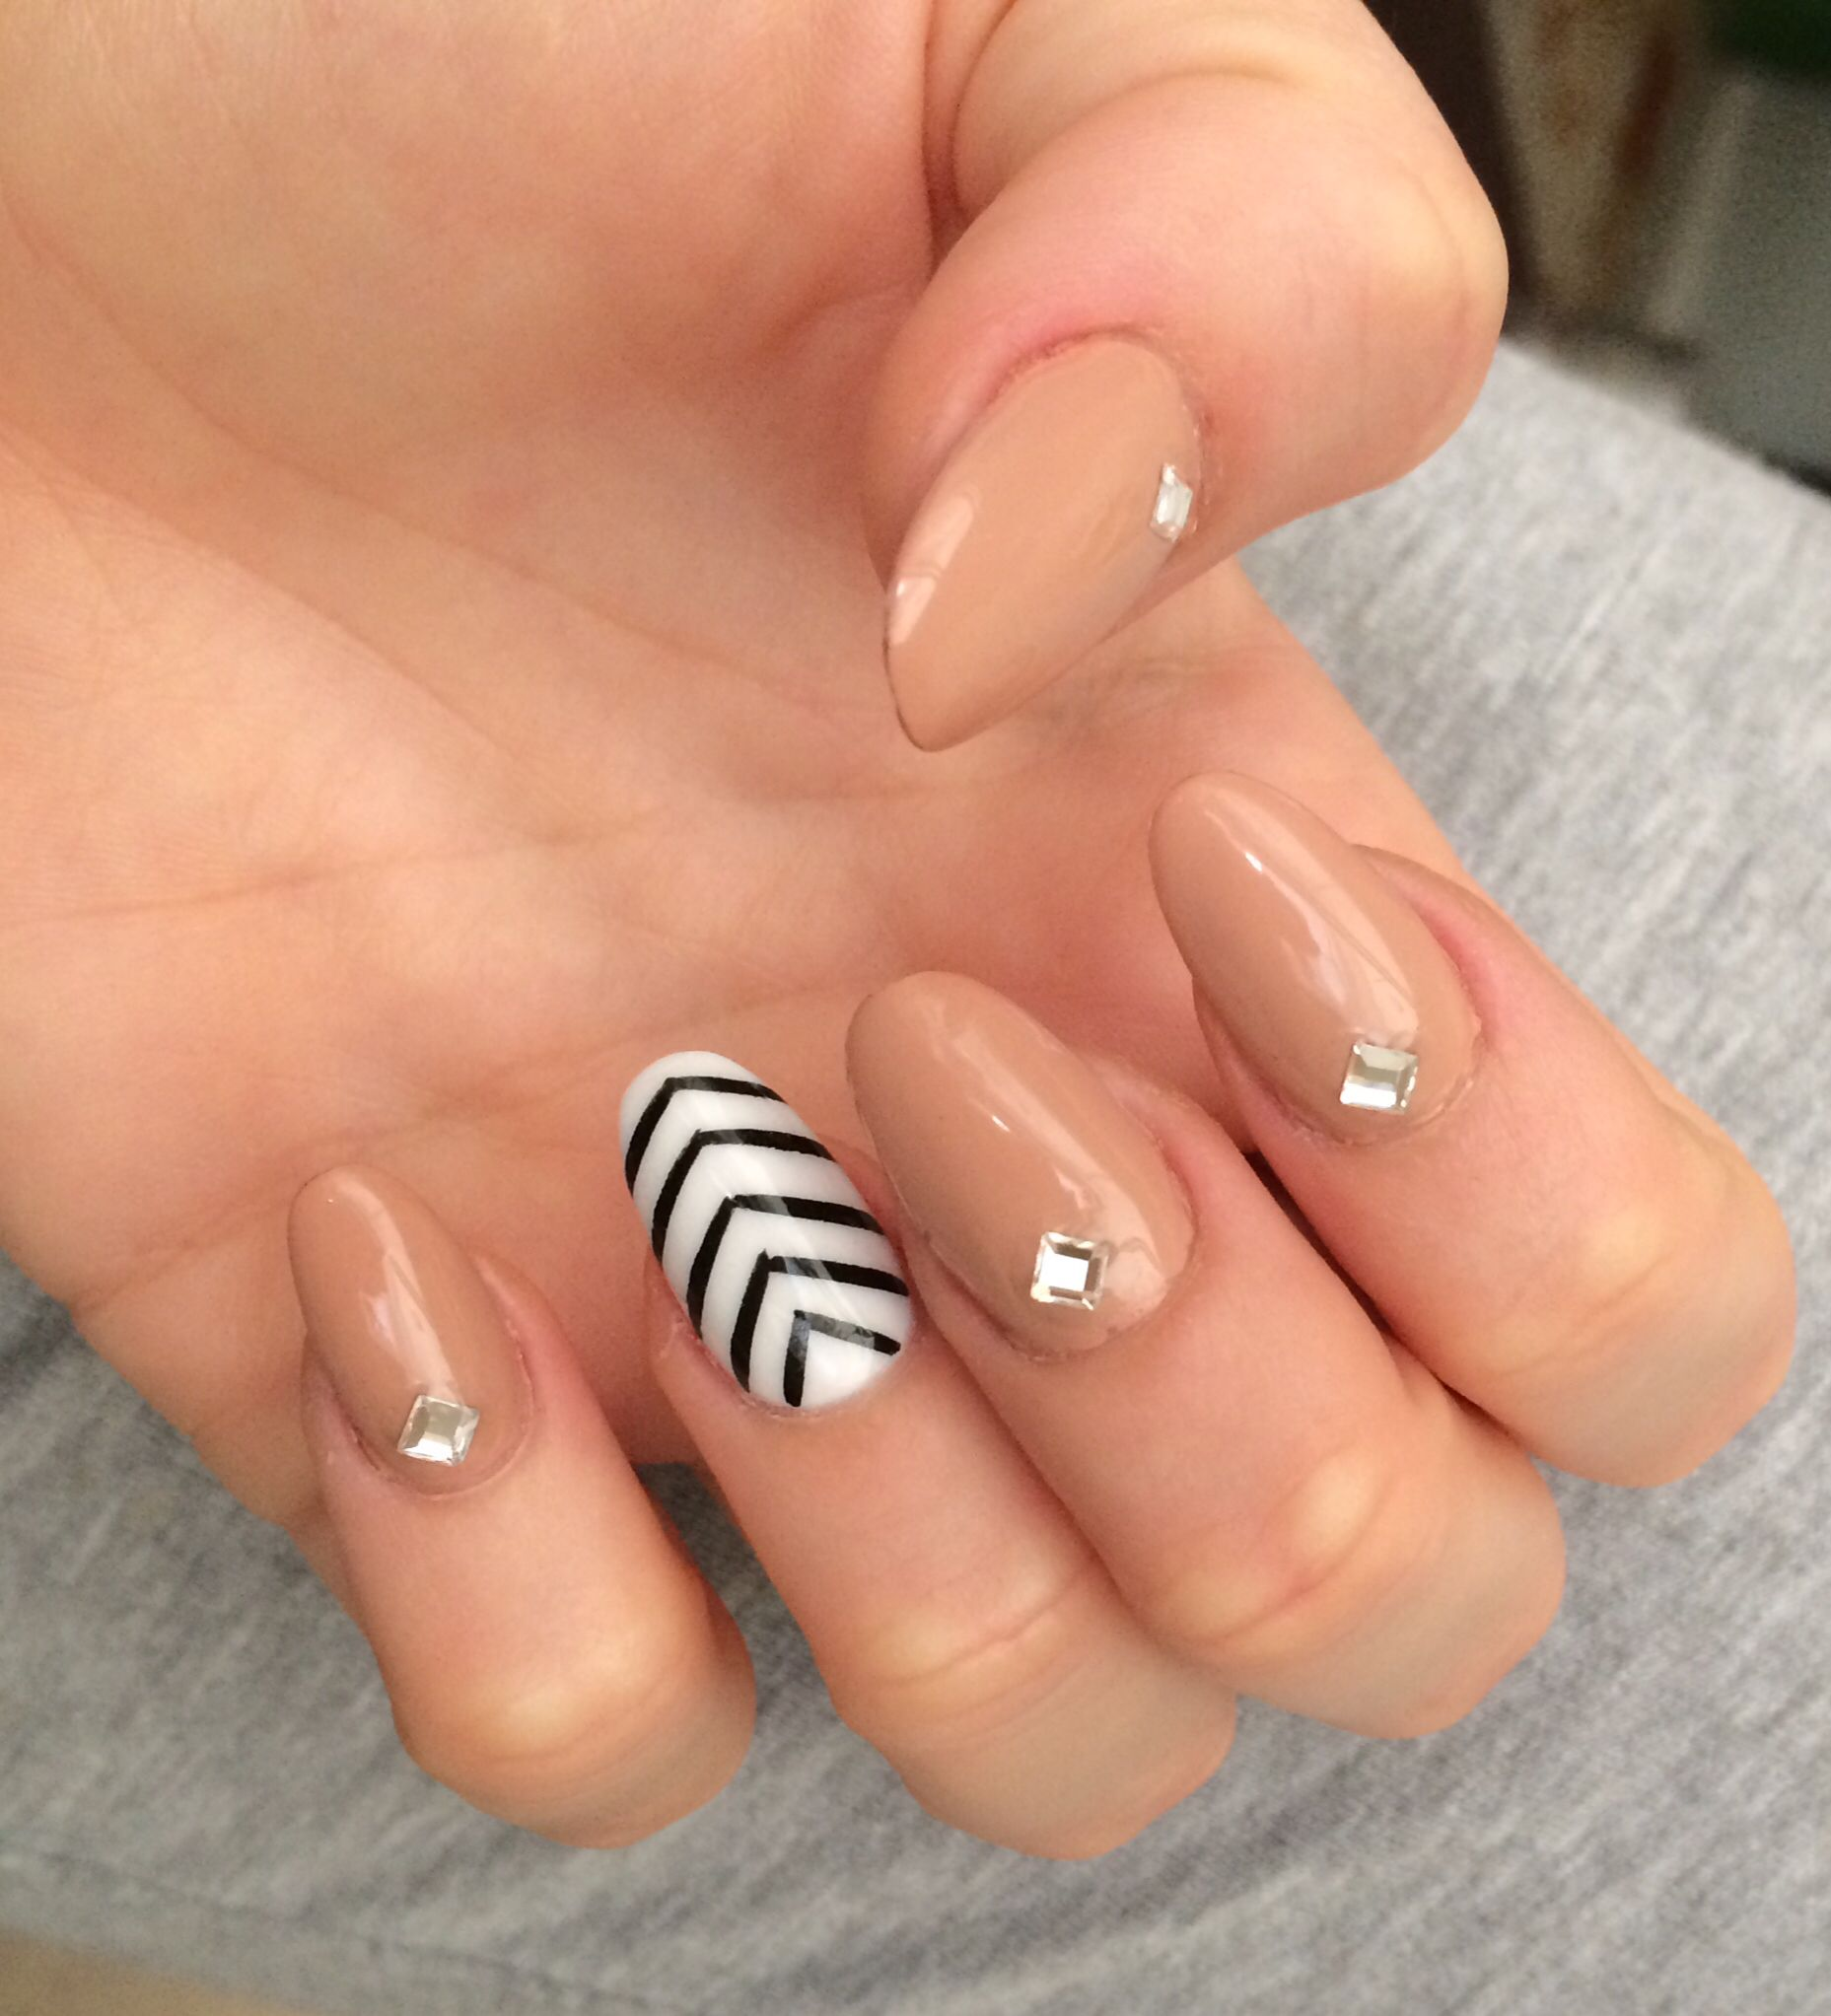 oval nails, acrylic nail design with diamonds, beige nails, nail